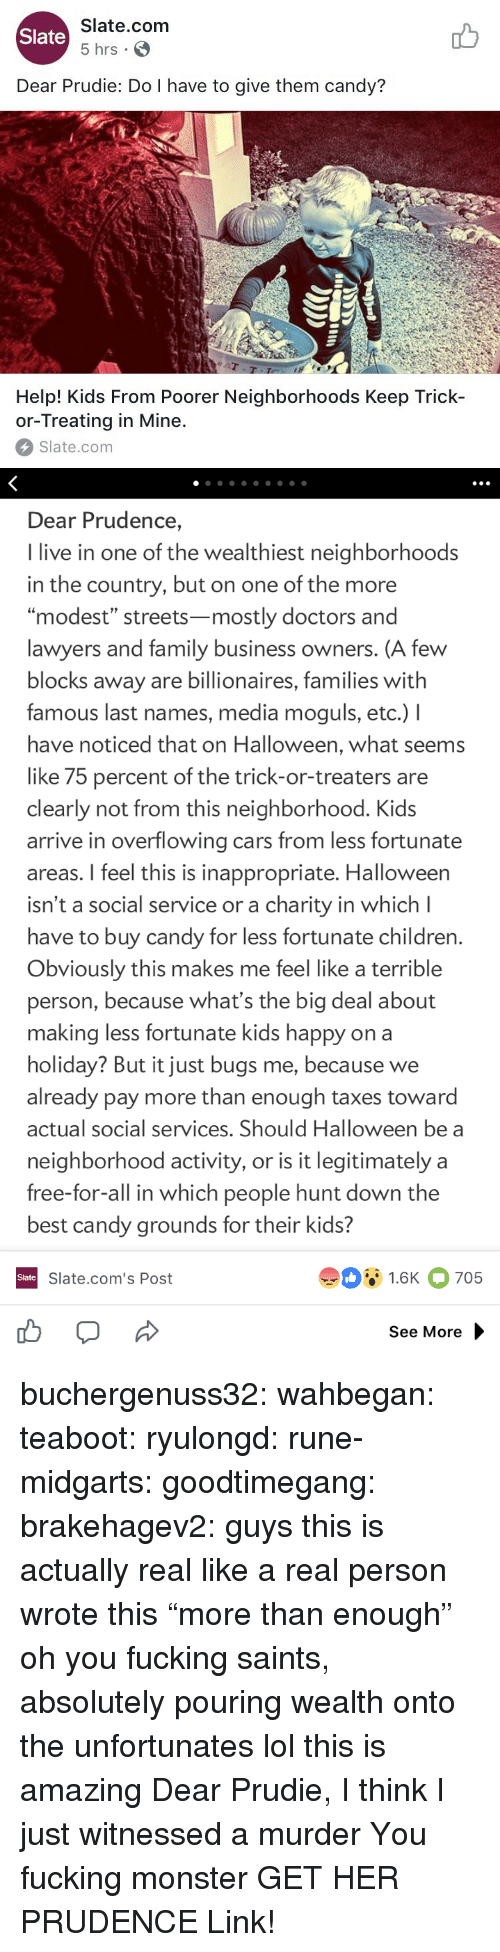 "last names: Slate.com  5 hrs .  Slate  Dear Prudie: Do I have to give them candy?  aT  T-T  Help! Kids From Poorer Neighborhoods Keep Trick-  or-Treating in Mine.  Slate.com   Dear Prudence,  I live in one of the wealthiest neighborhoods  in the country, but on one of the more  ""modest"" streets-mostly doctors and  lawyers and family business owners. (A few  blocks away are billionaires, families with  famous last names, media moguls, etc.) I  have noticed that on Halloween, what seems  like 75 percent of the trick-or-treaters are  clearly not from this neighborhood. Kids  arrive in overflowing cars from less fortunate  areas. I feel this is inappropriate. Halloween  isn't a social service or a charity in which l  have to buy candy for less fortunate children  Obviously this makes me feel like a terrible  person, because what's the big deal about  making less fortunate kids happy on a  holiday? But it just bugs me, because we  already pay more than enough taxes toward  actual social services. Should Halloween be a  neighborhood activity, or is it legitimately a  free-for-all in which people hunt down the  best candy grounds for their kids?  91.6K 705  Slate  Slate.com's Post  See More buchergenuss32:  wahbegan: teaboot:  ryulongd:  rune-midgarts:  goodtimegang:  brakehagev2:  guys this is actually real like a real person wrote this  ""more than enough"" oh you fucking saints, absolutely pouring wealth onto the unfortunates   lol this is amazing   Dear Prudie, I think I just witnessed a murder  You fucking monster  GET HER PRUDENCE  Link!"